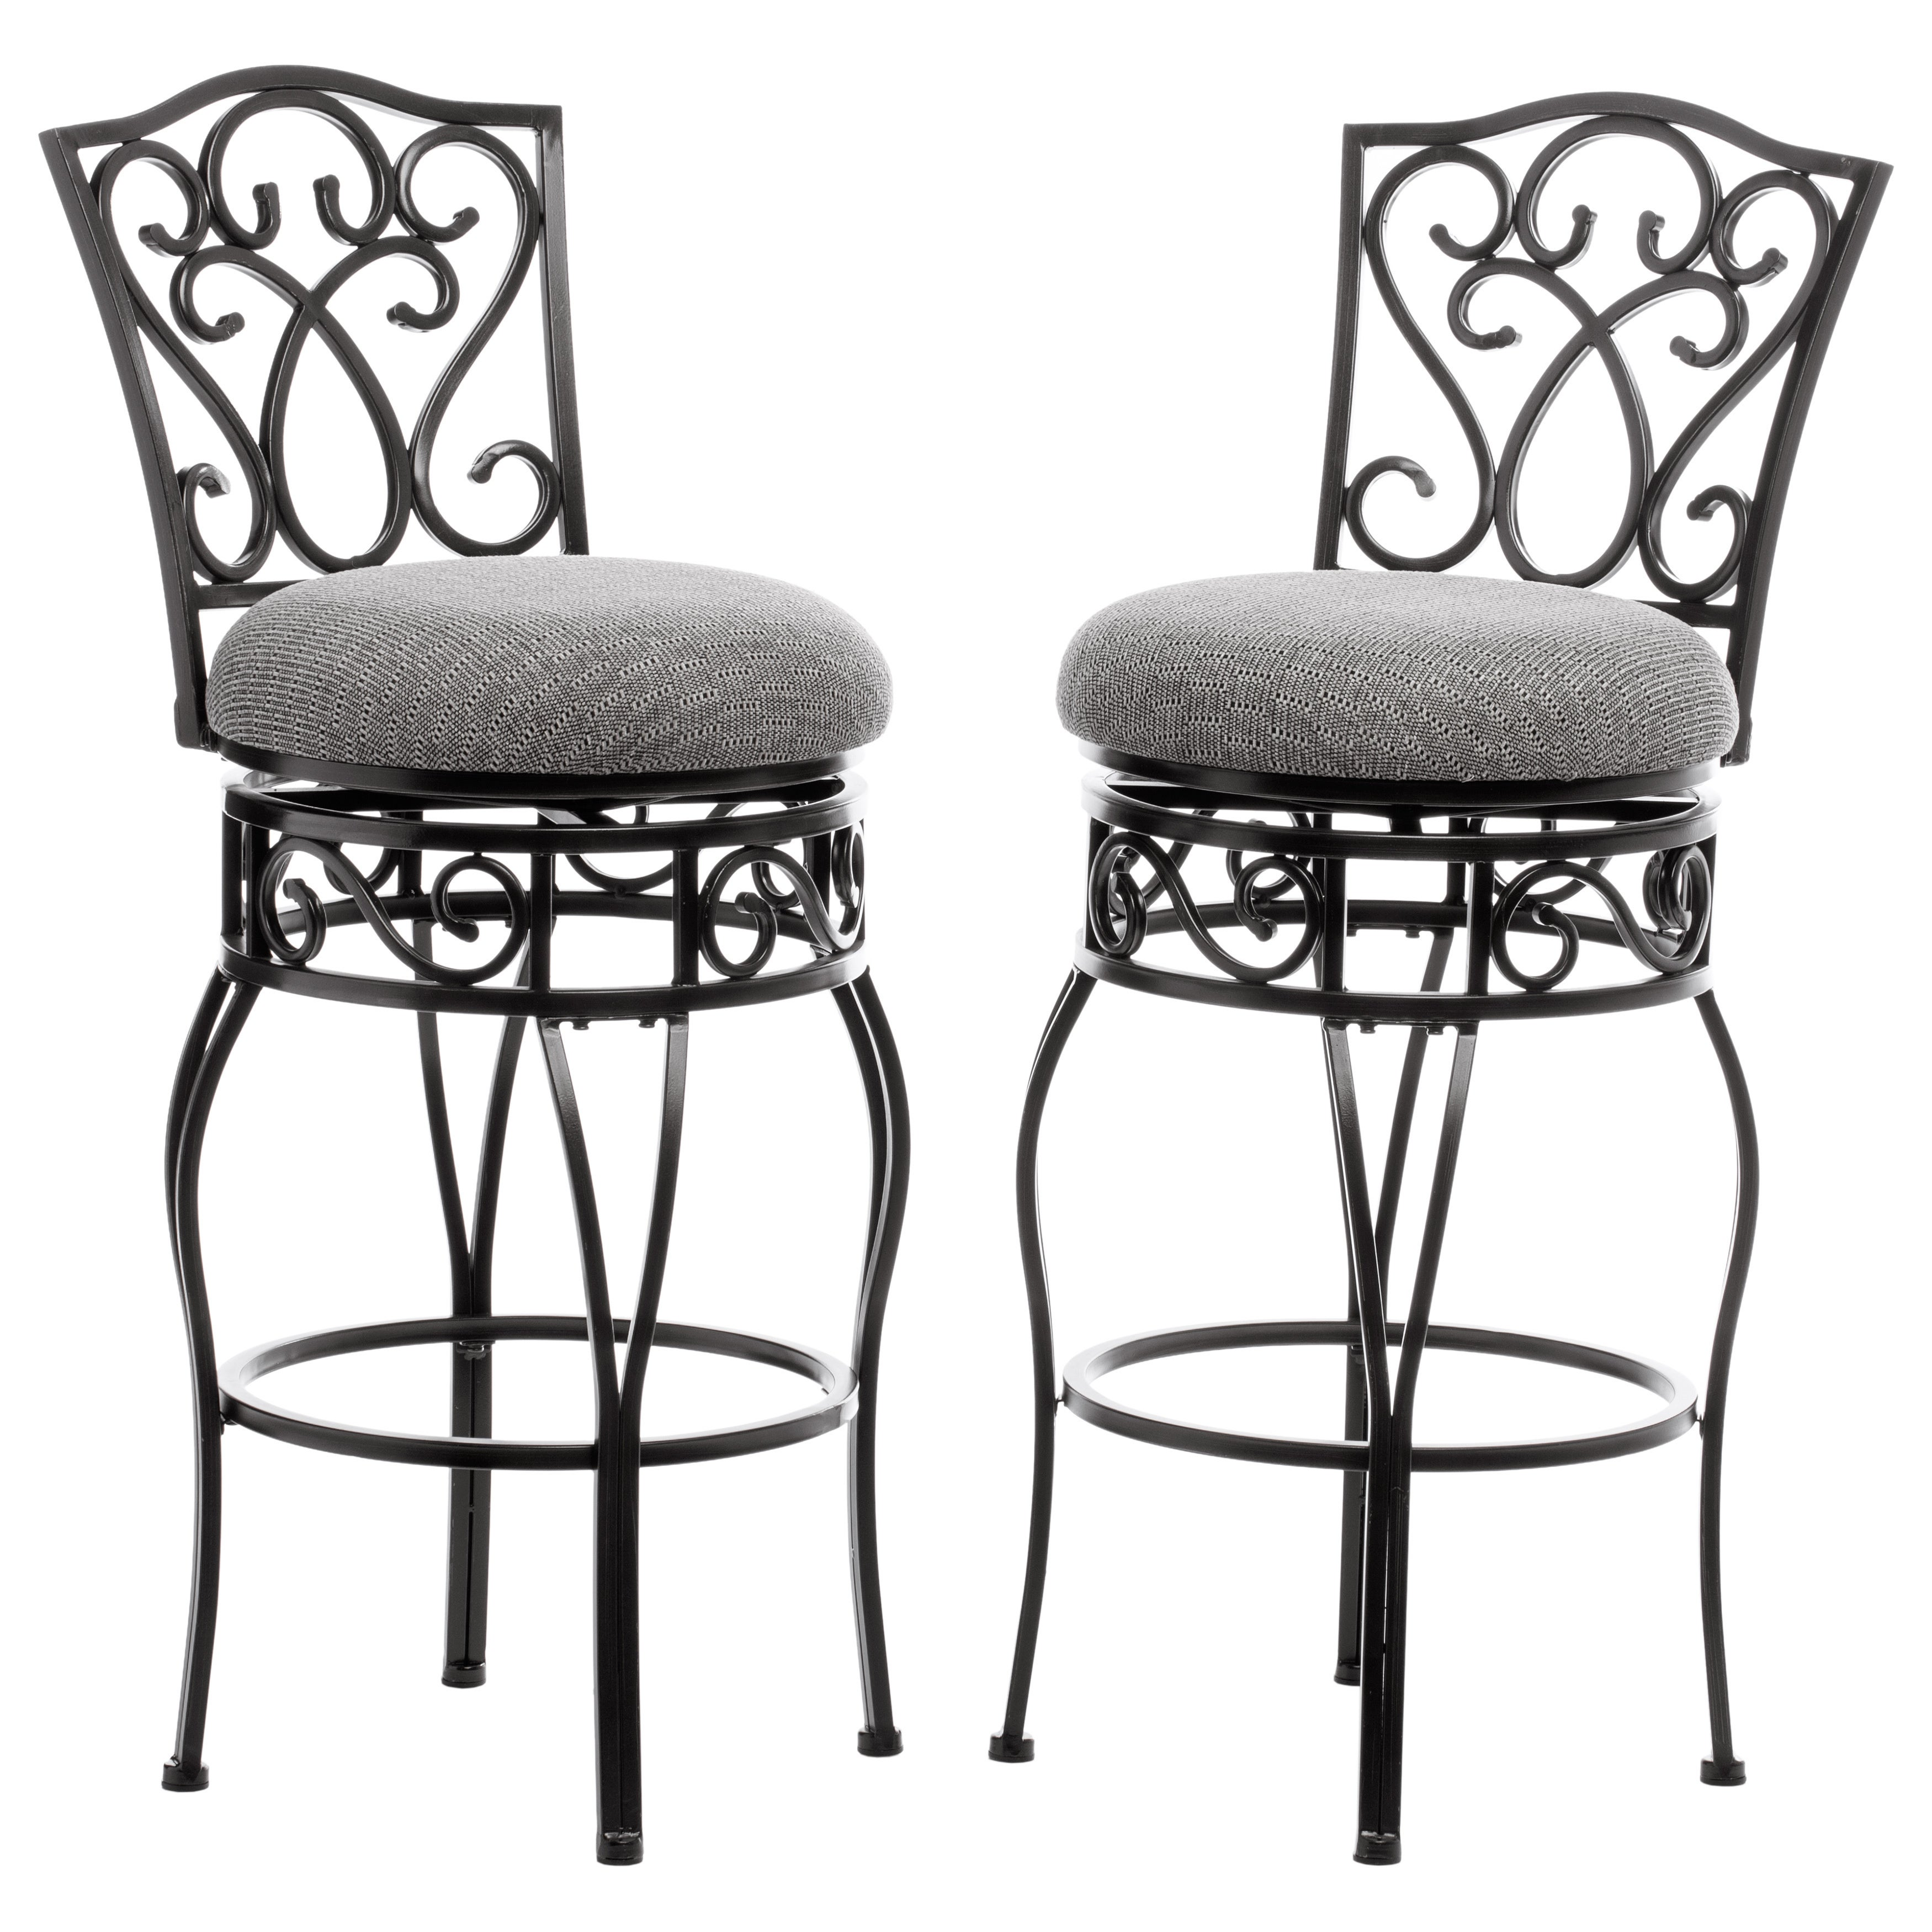 Shop copper grove chase 31 inch bar stools pack of 2 free shipping today overstock com 5095632